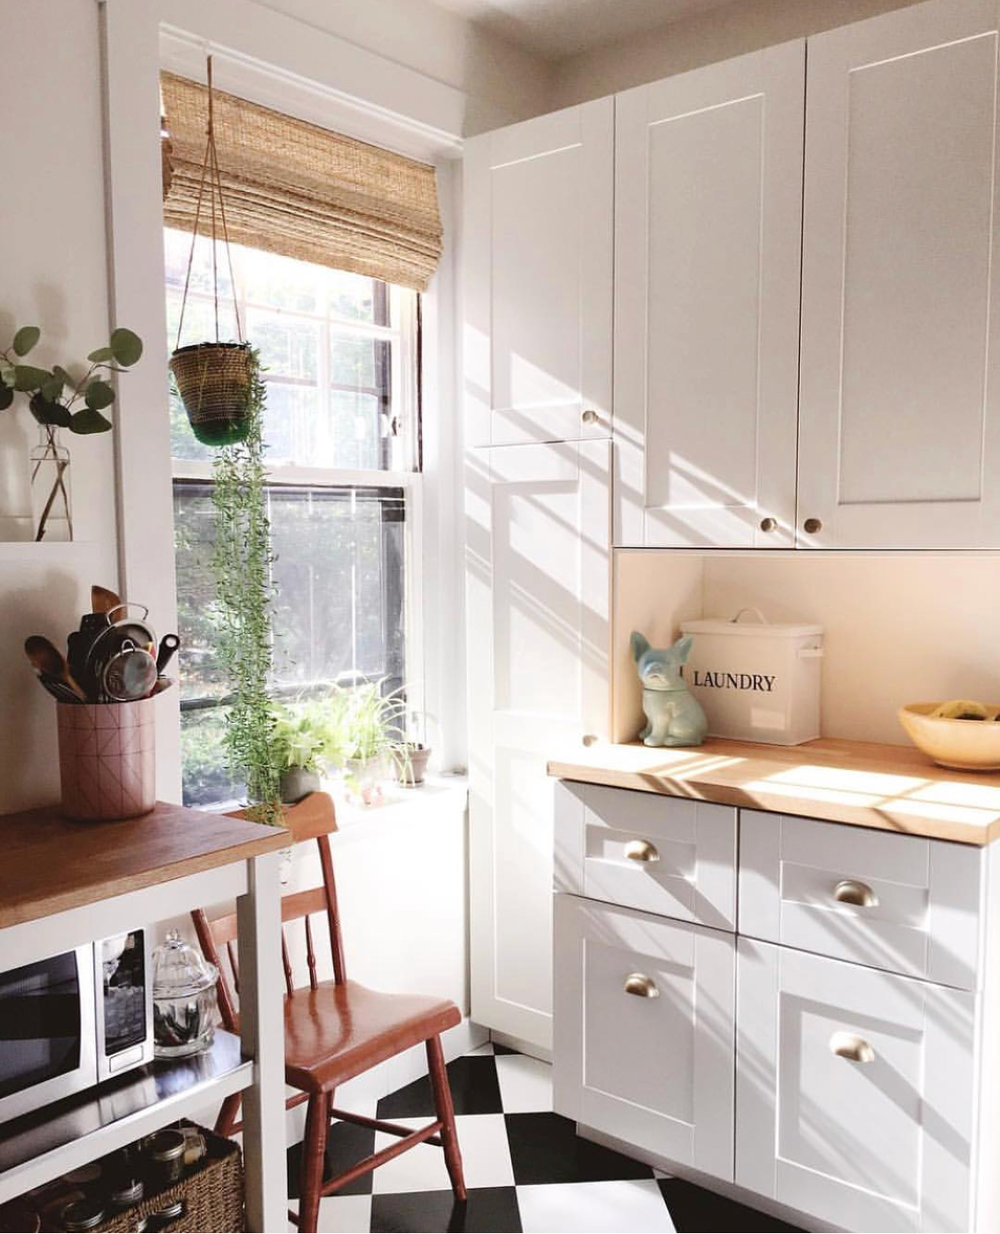 Above: A kitchen in White Dove with Simply White Trim.  You can see how White Dove is just a hair warmer than Simply White (White Dove has slightly pinker undertones).